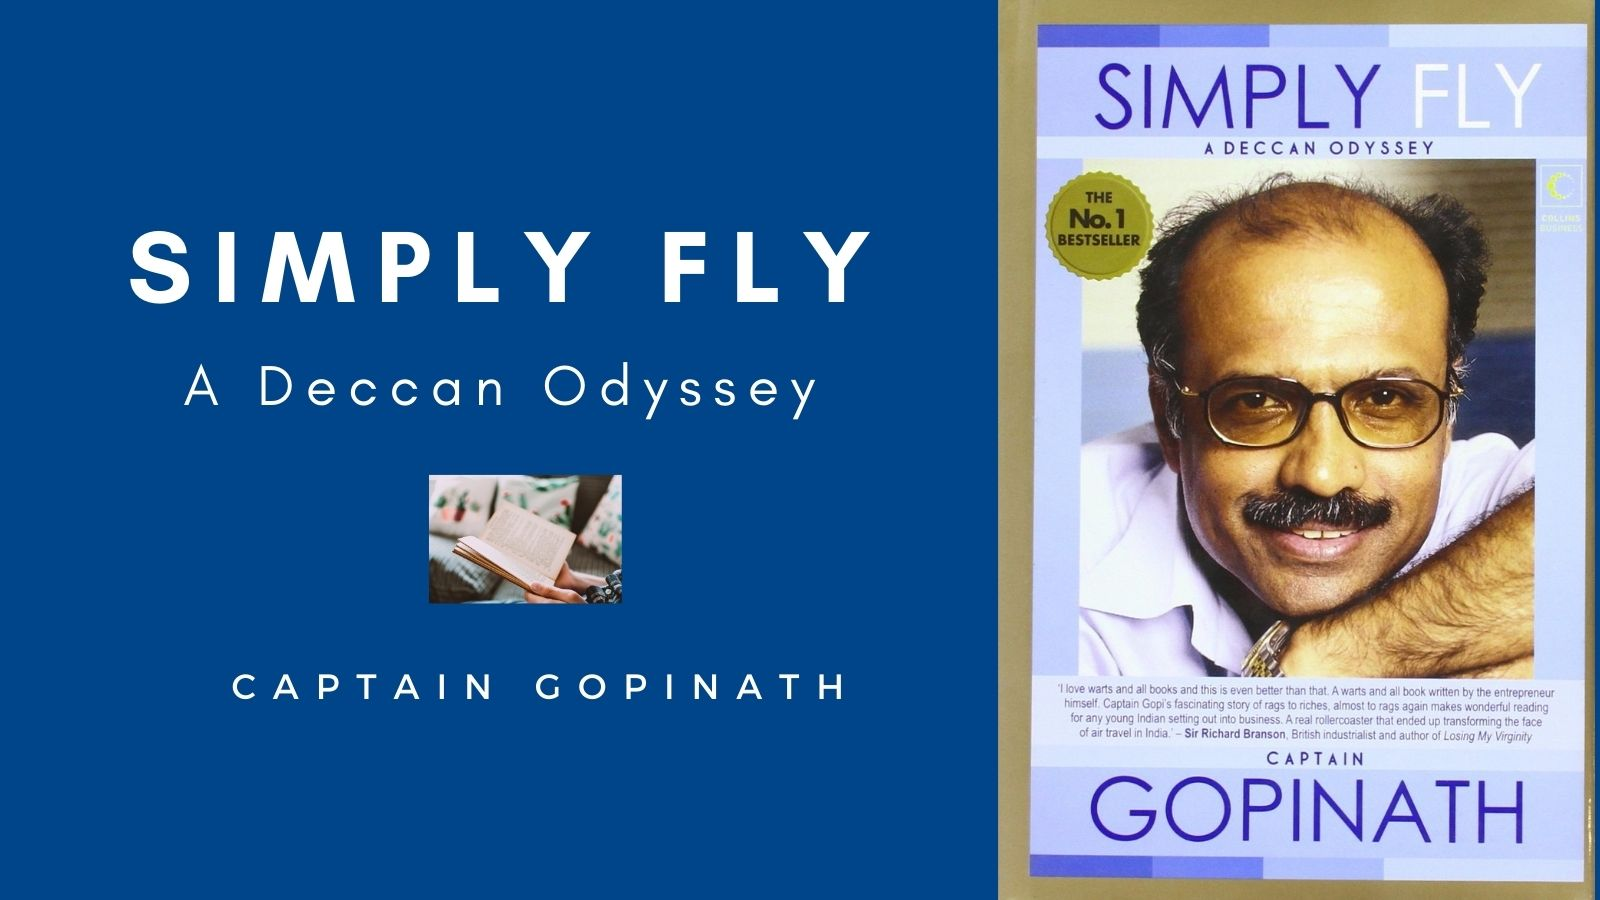 Simply Fly - A Deccan Odyssey by Captain Gopinath